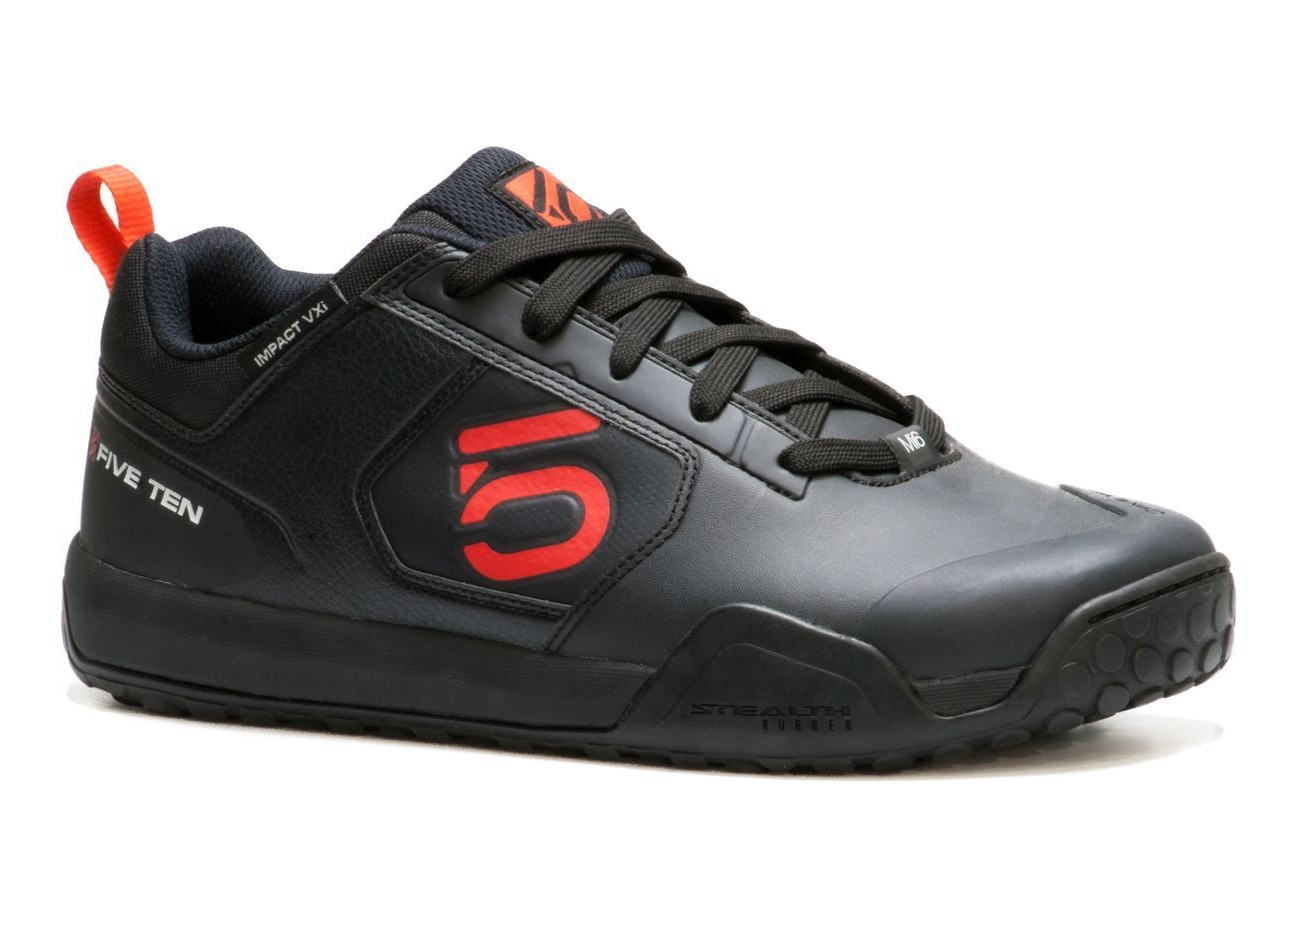 Five Ten IMPACT VXI Shoe - TEAM BLACK